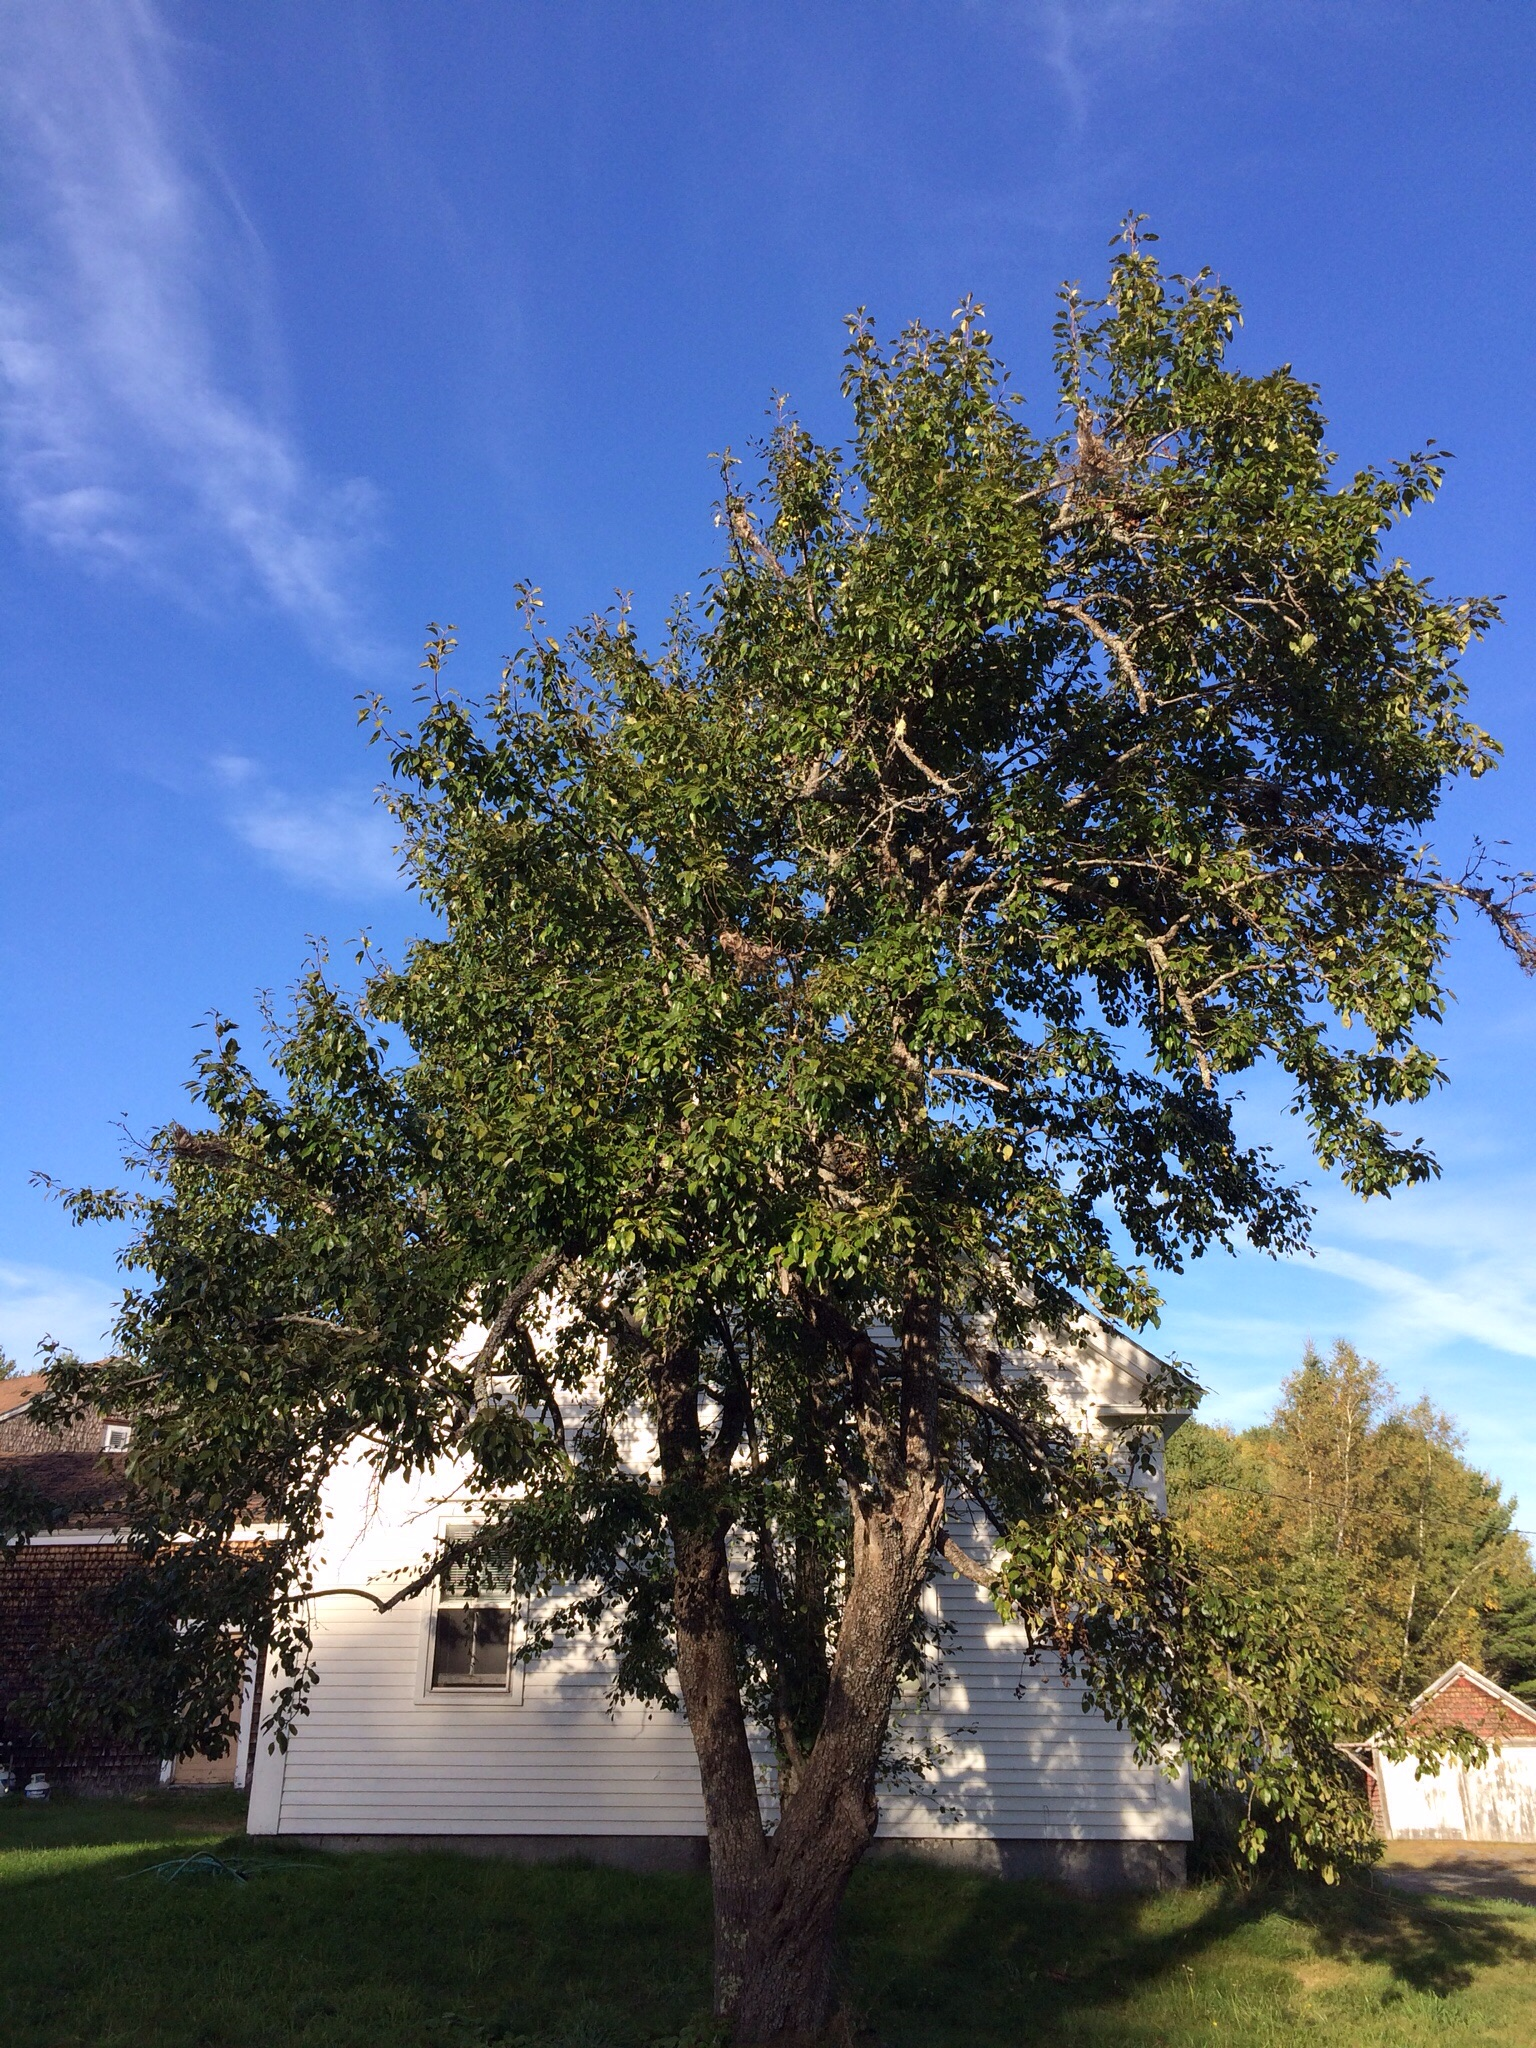 It's an enormous tree for a pear. I love how it towers over the house.